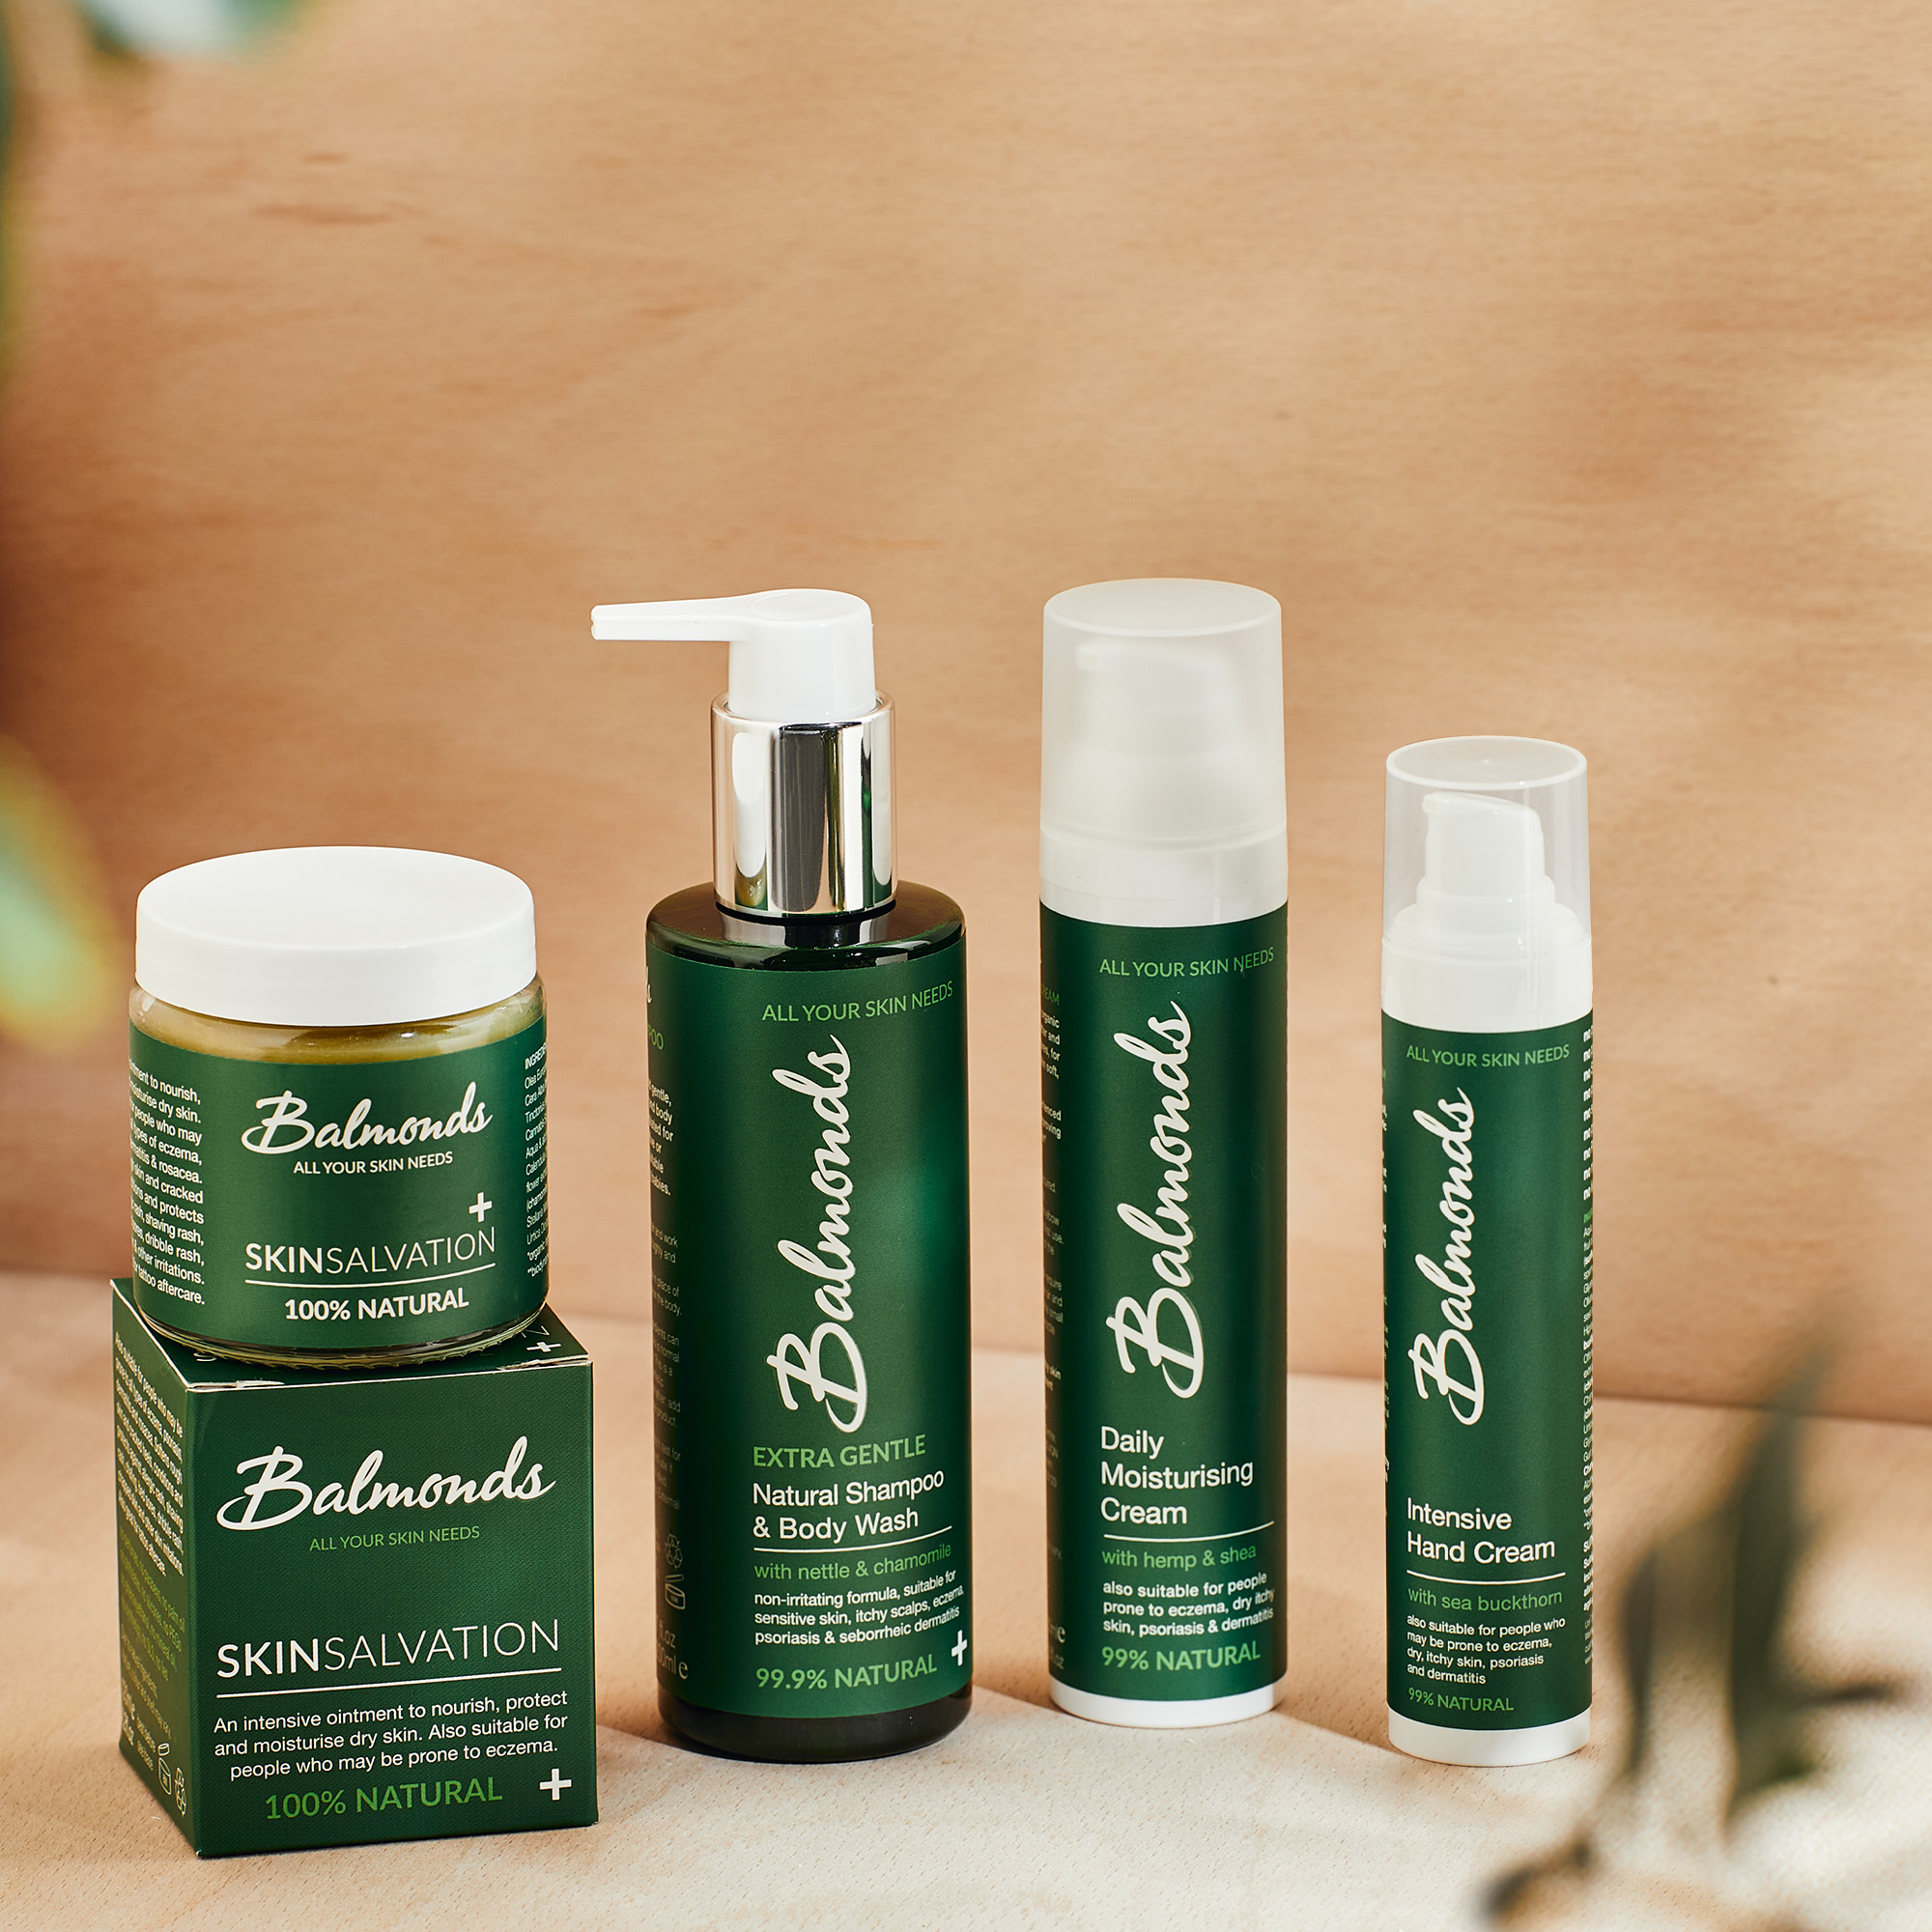 Balmonds natural skincare products lined up in a row